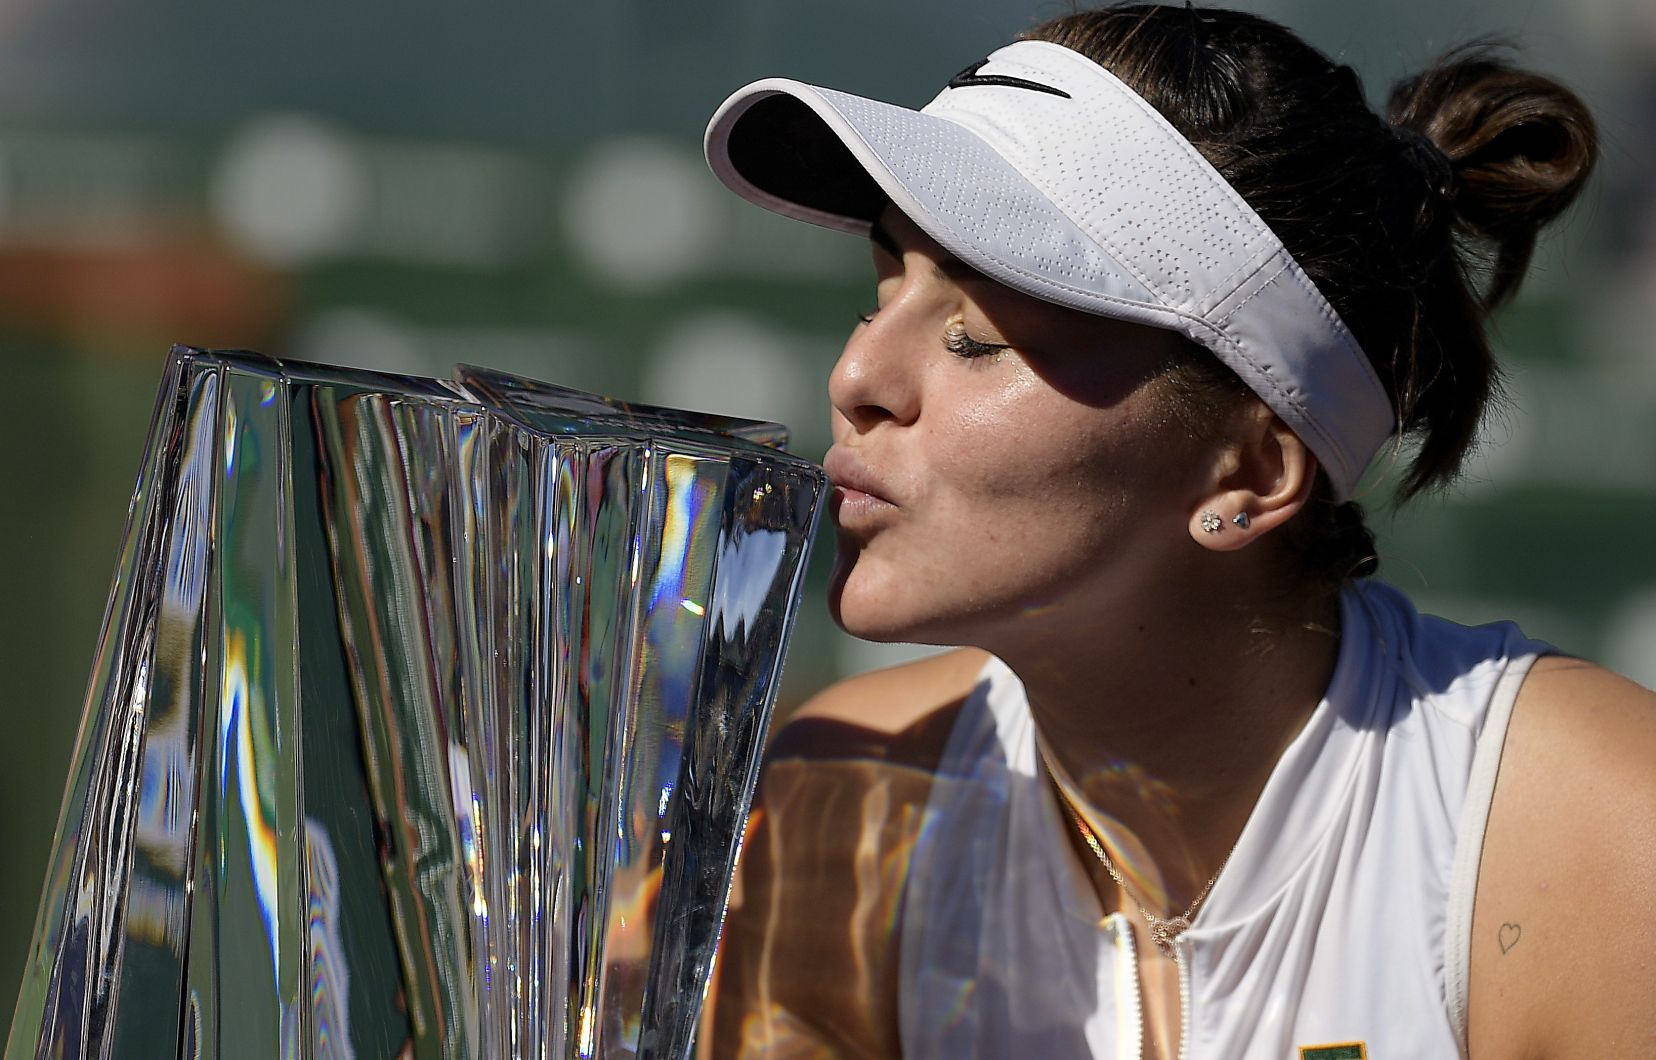 sports-bianca-andreescu-remporte-le-tournoi-dindian-wells/image-jpg.jpeg